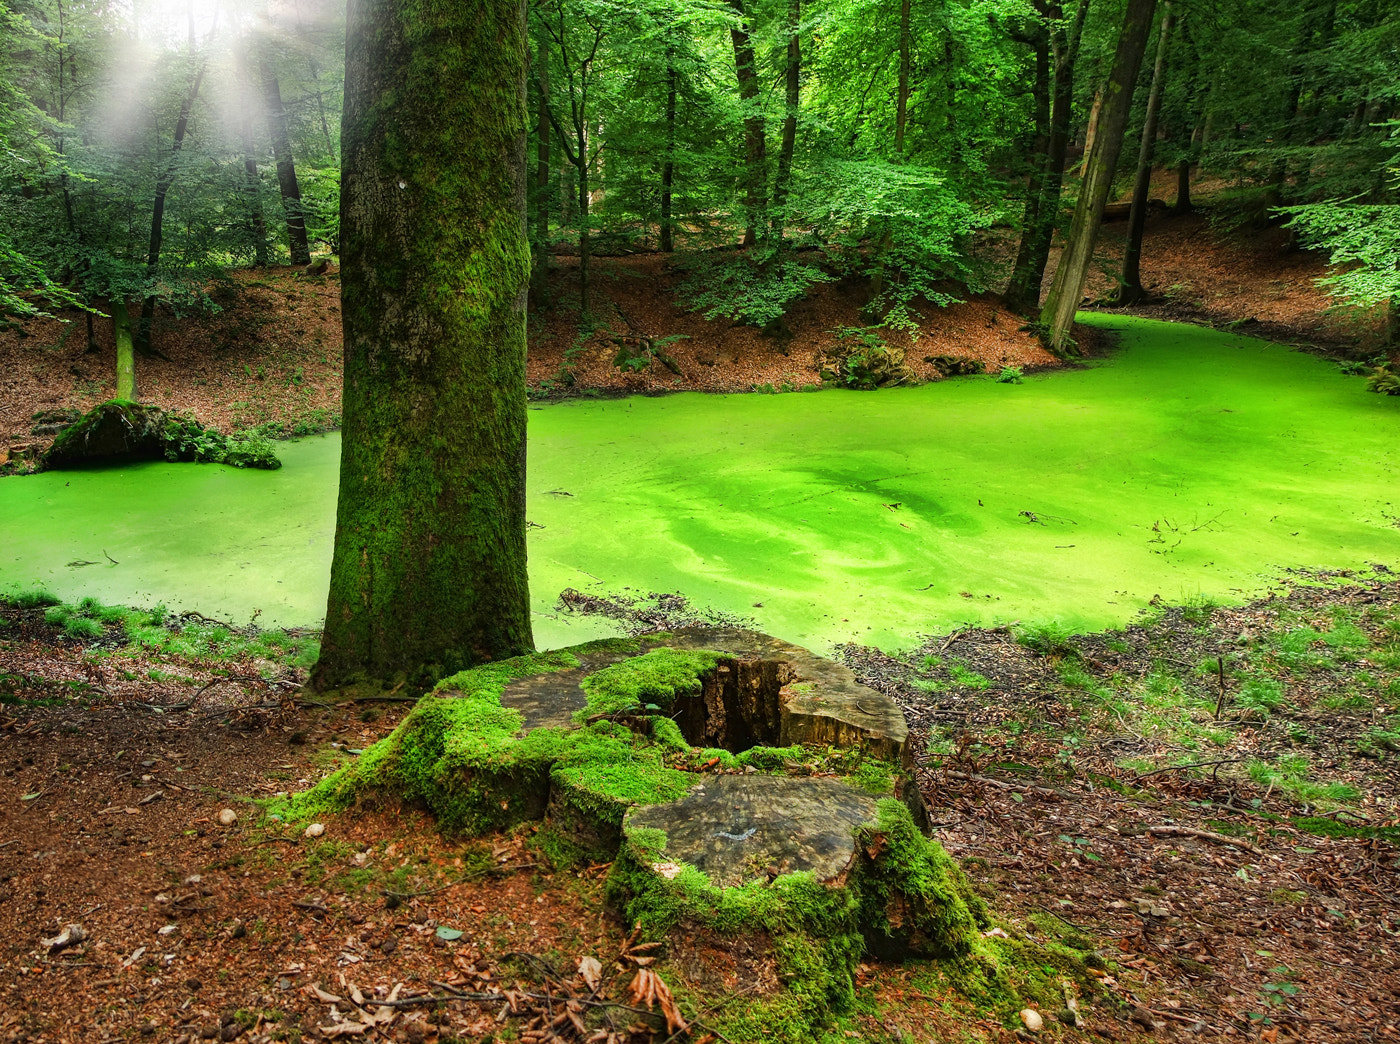 Photograph green carpet by Patrick Strik on 500px